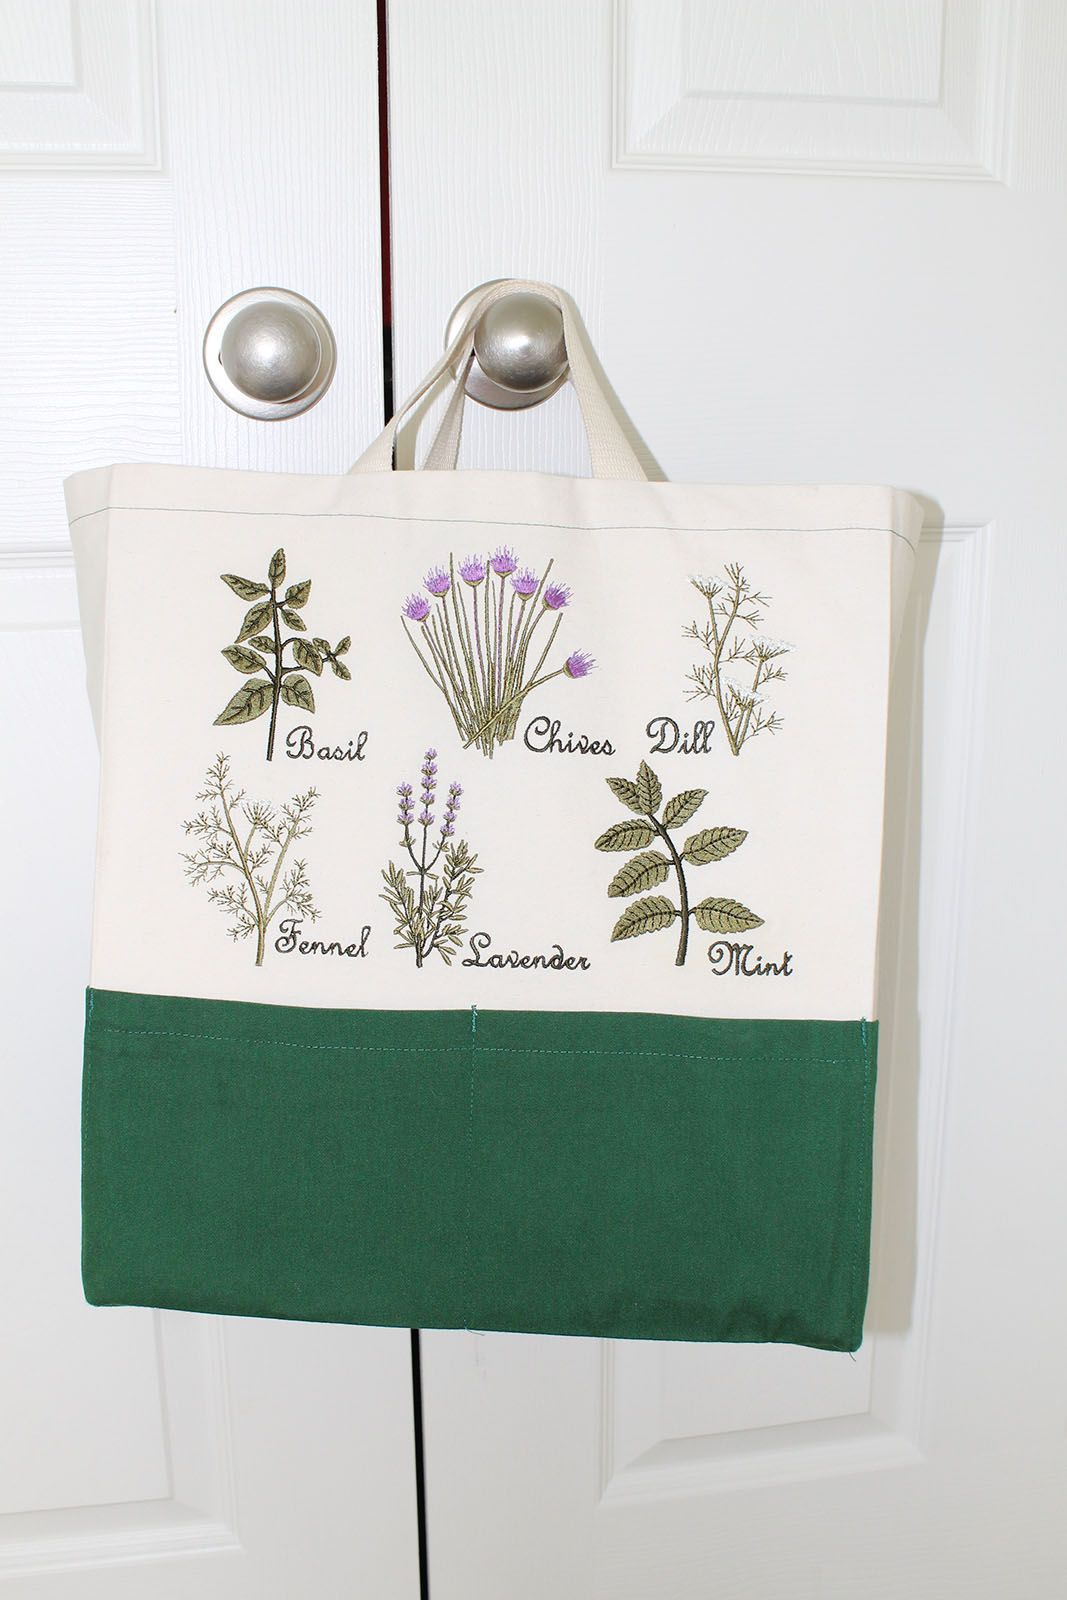 My Herb Garden Embroidery Designs on the Ten Pocket Tote